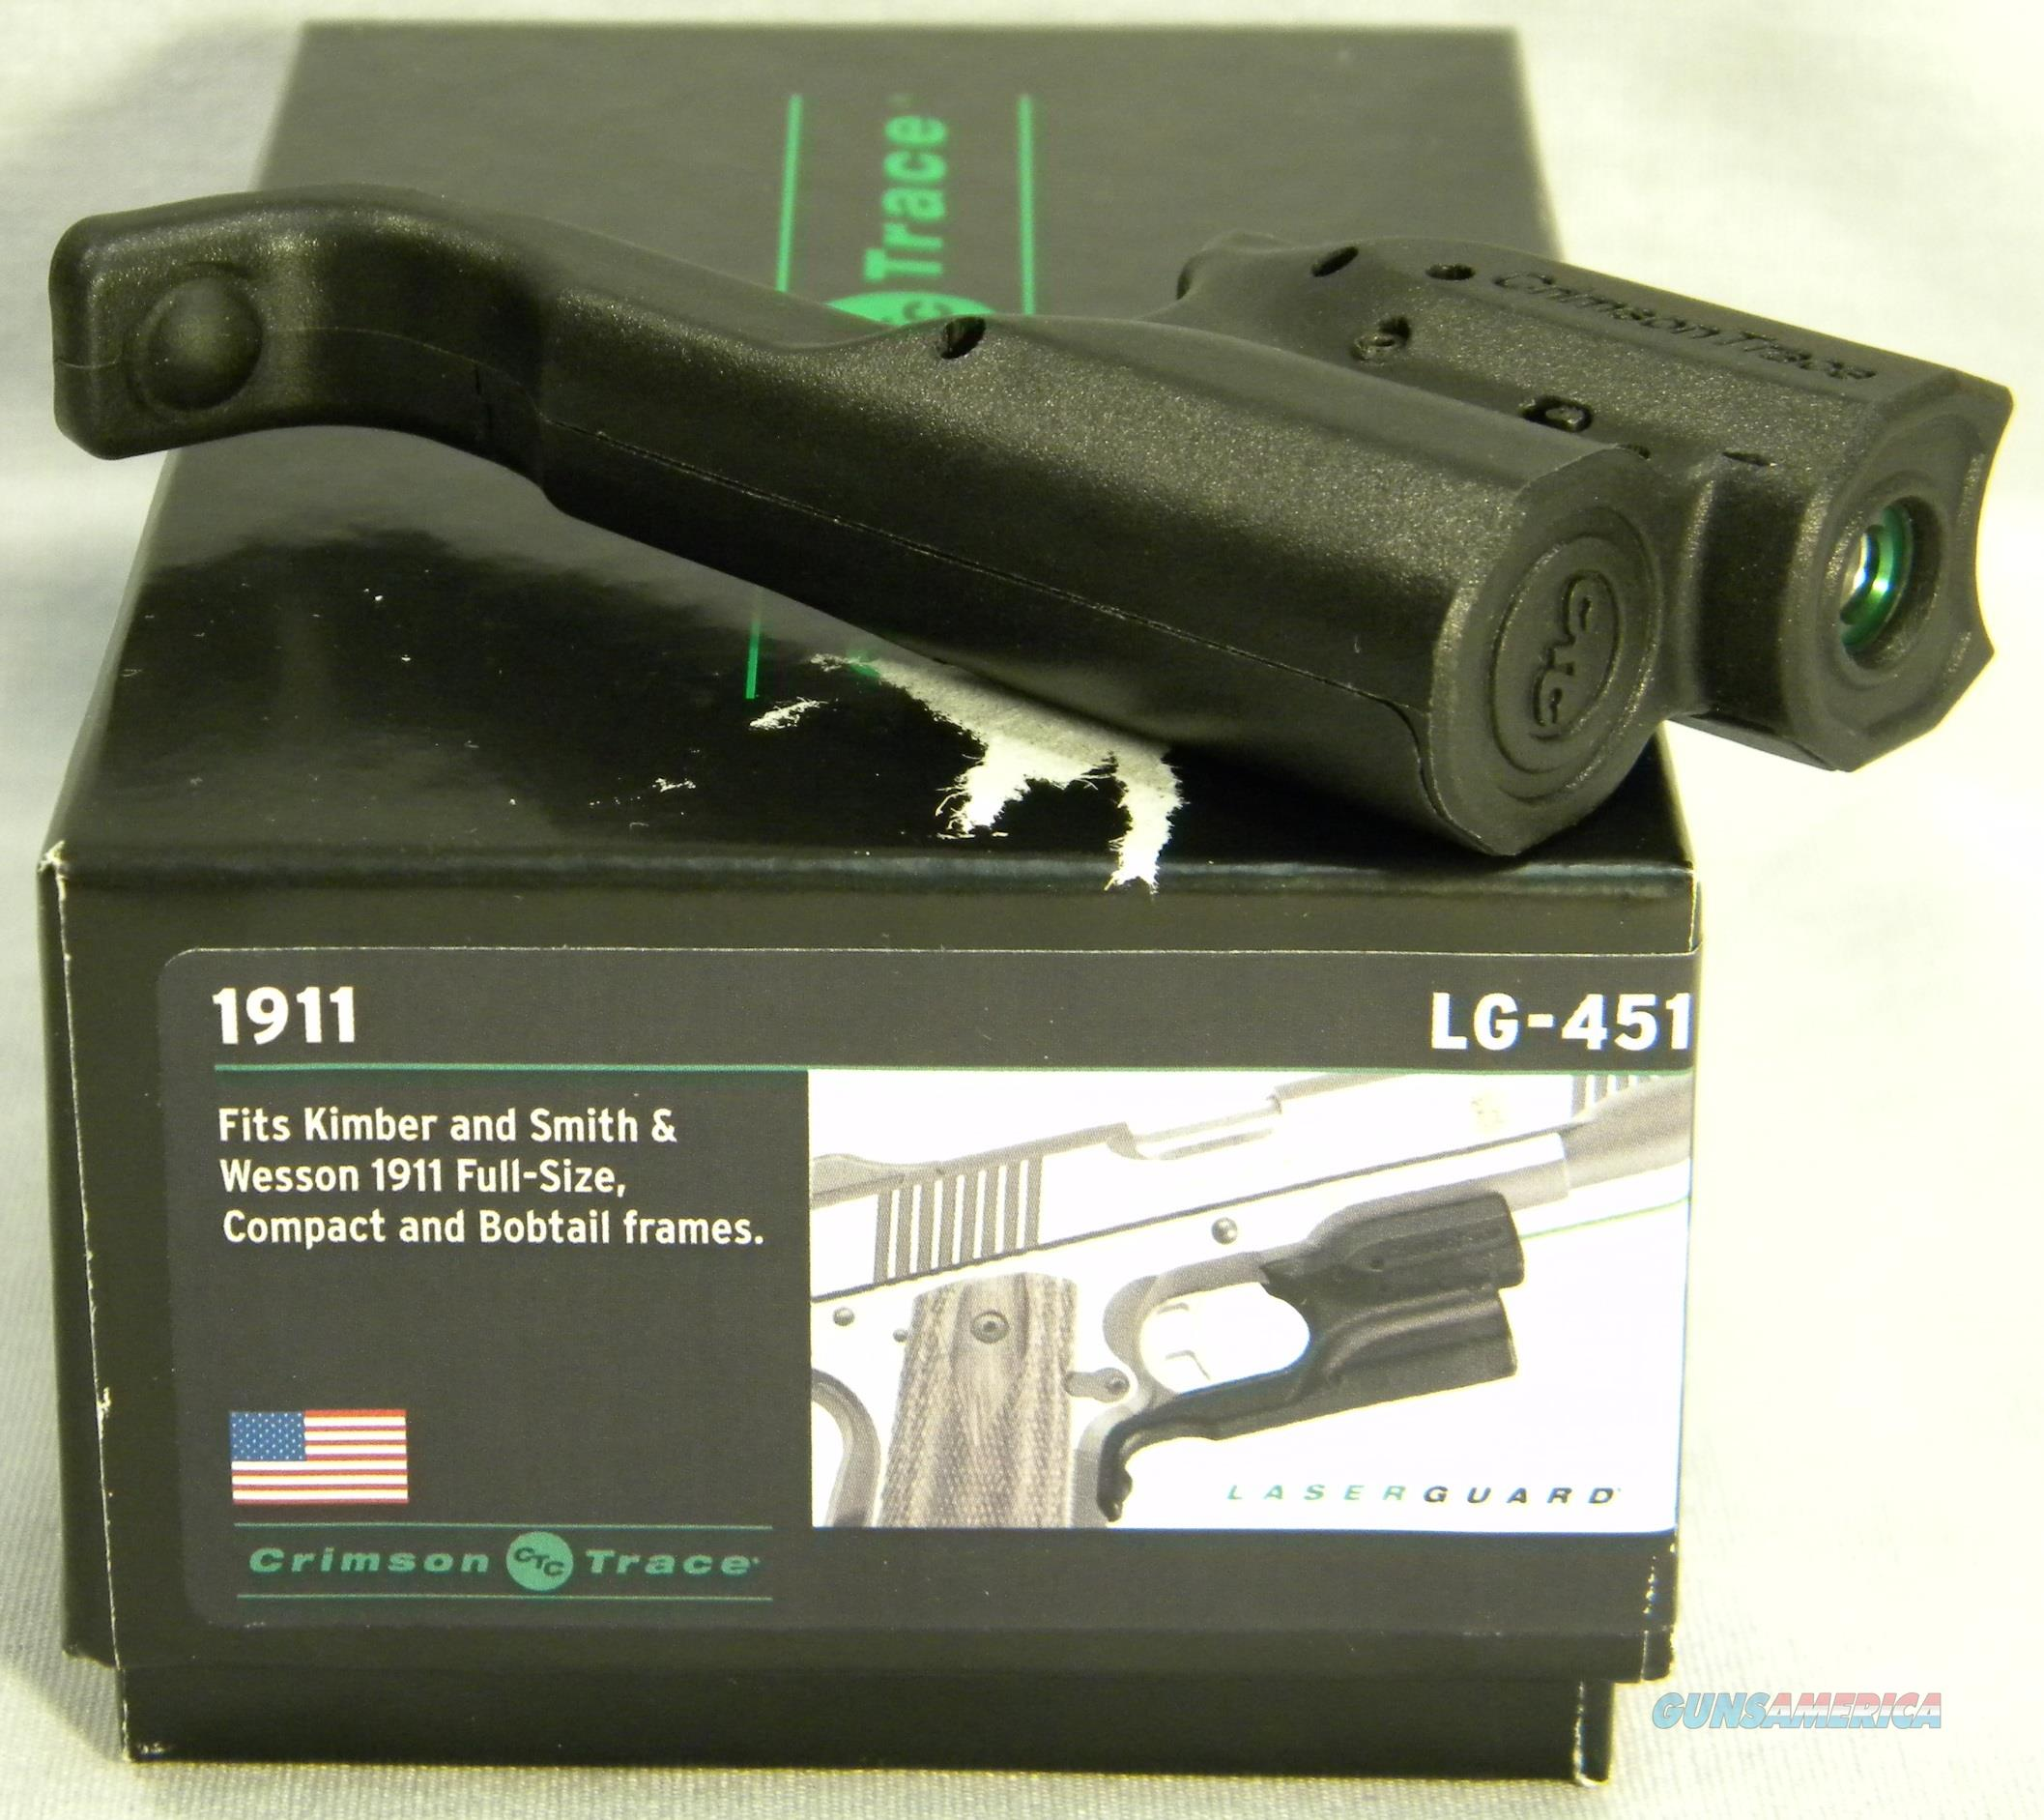 Crimson Trace LG-451 Trigger Guard Mounted Green Laser For Kimber and S&W 1911's, Crimson Trace Lasers Inventory Reduction Sale!  Non-Guns > Scopes/Mounts/Rings & Optics > Non-Scope Optics > Other